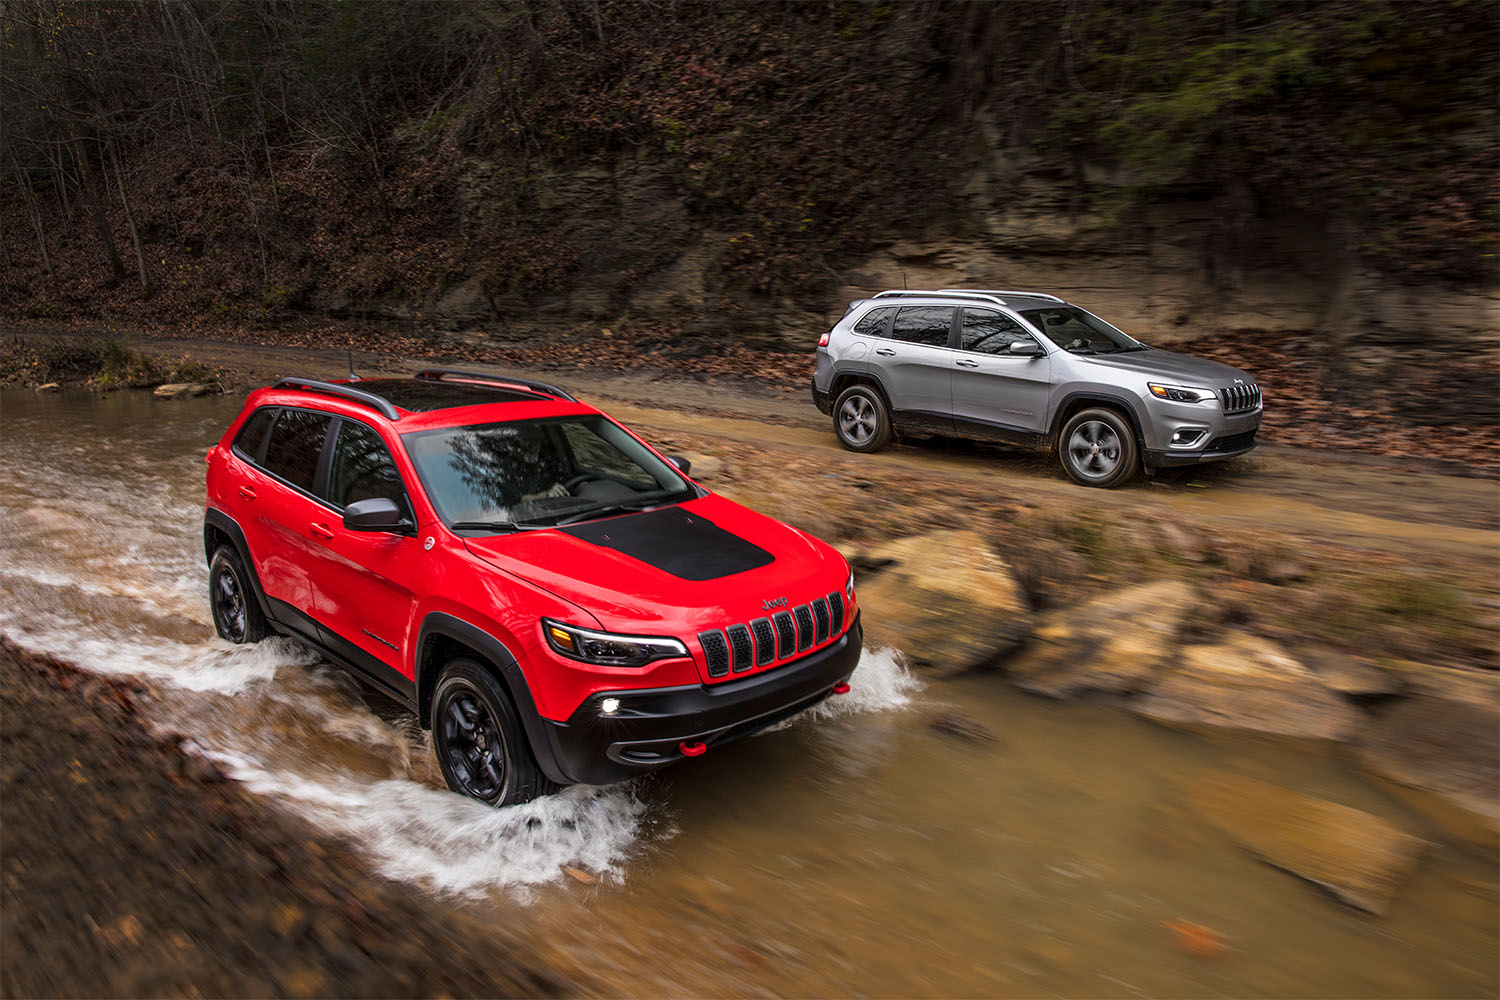 New Jeep available in Jackson, MI at Hometown Chrysler Dodge Jeep Ram